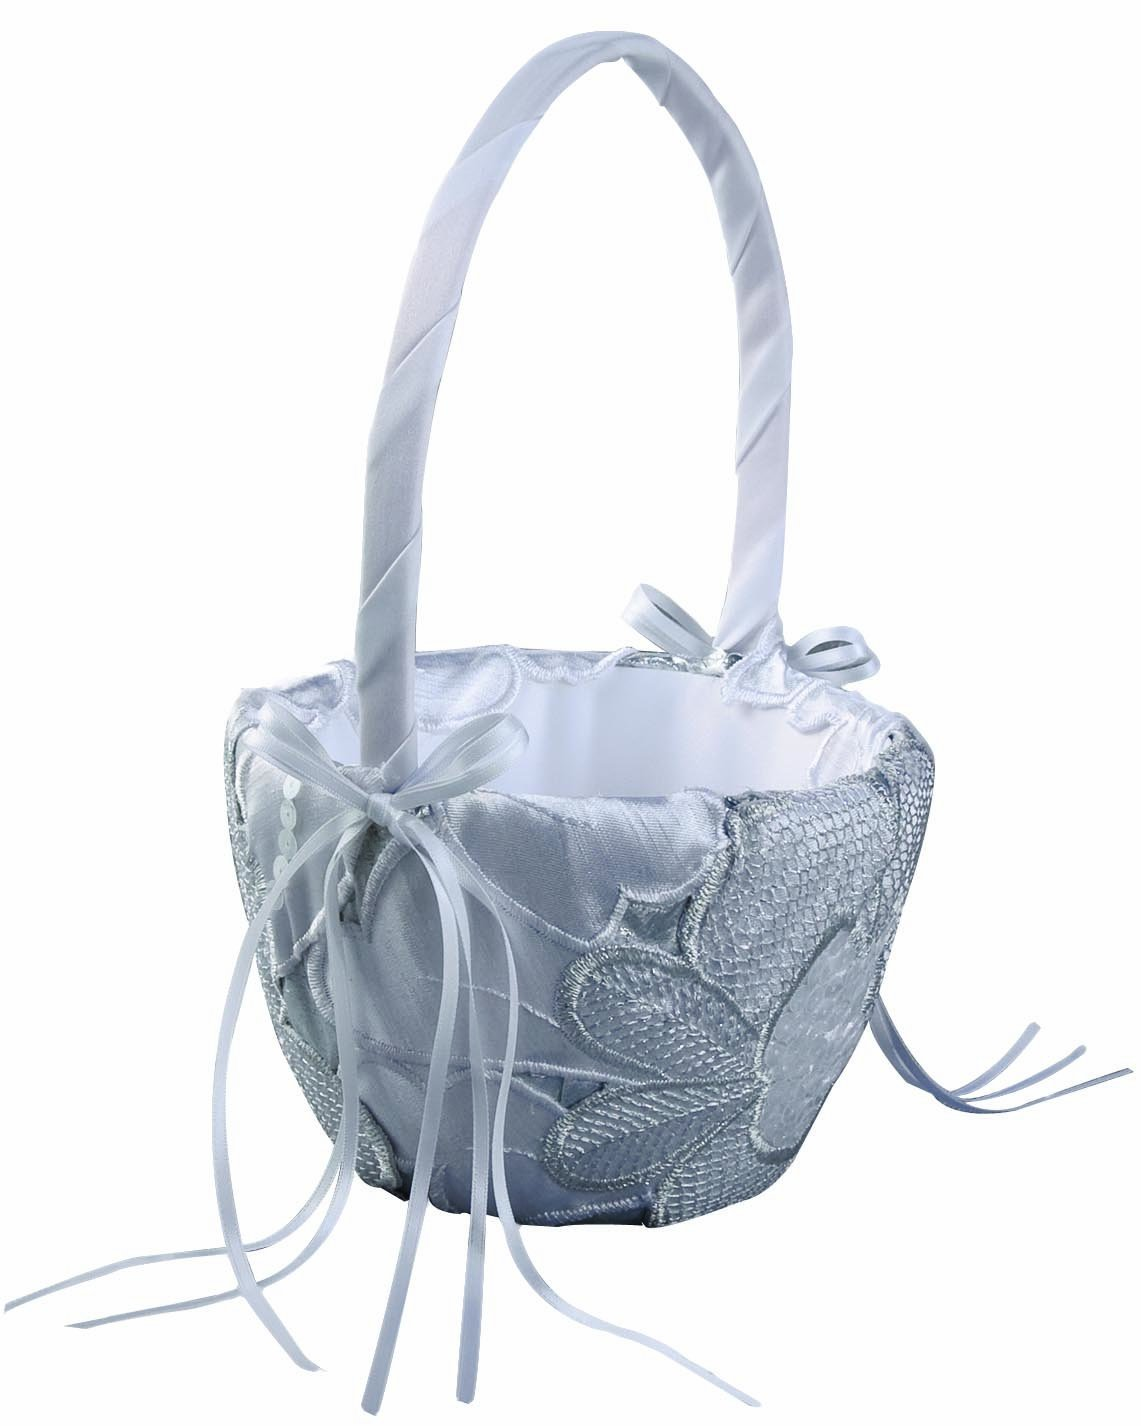 Ivy Lane Design New York Collection Flower Girl Basket, Silver and White